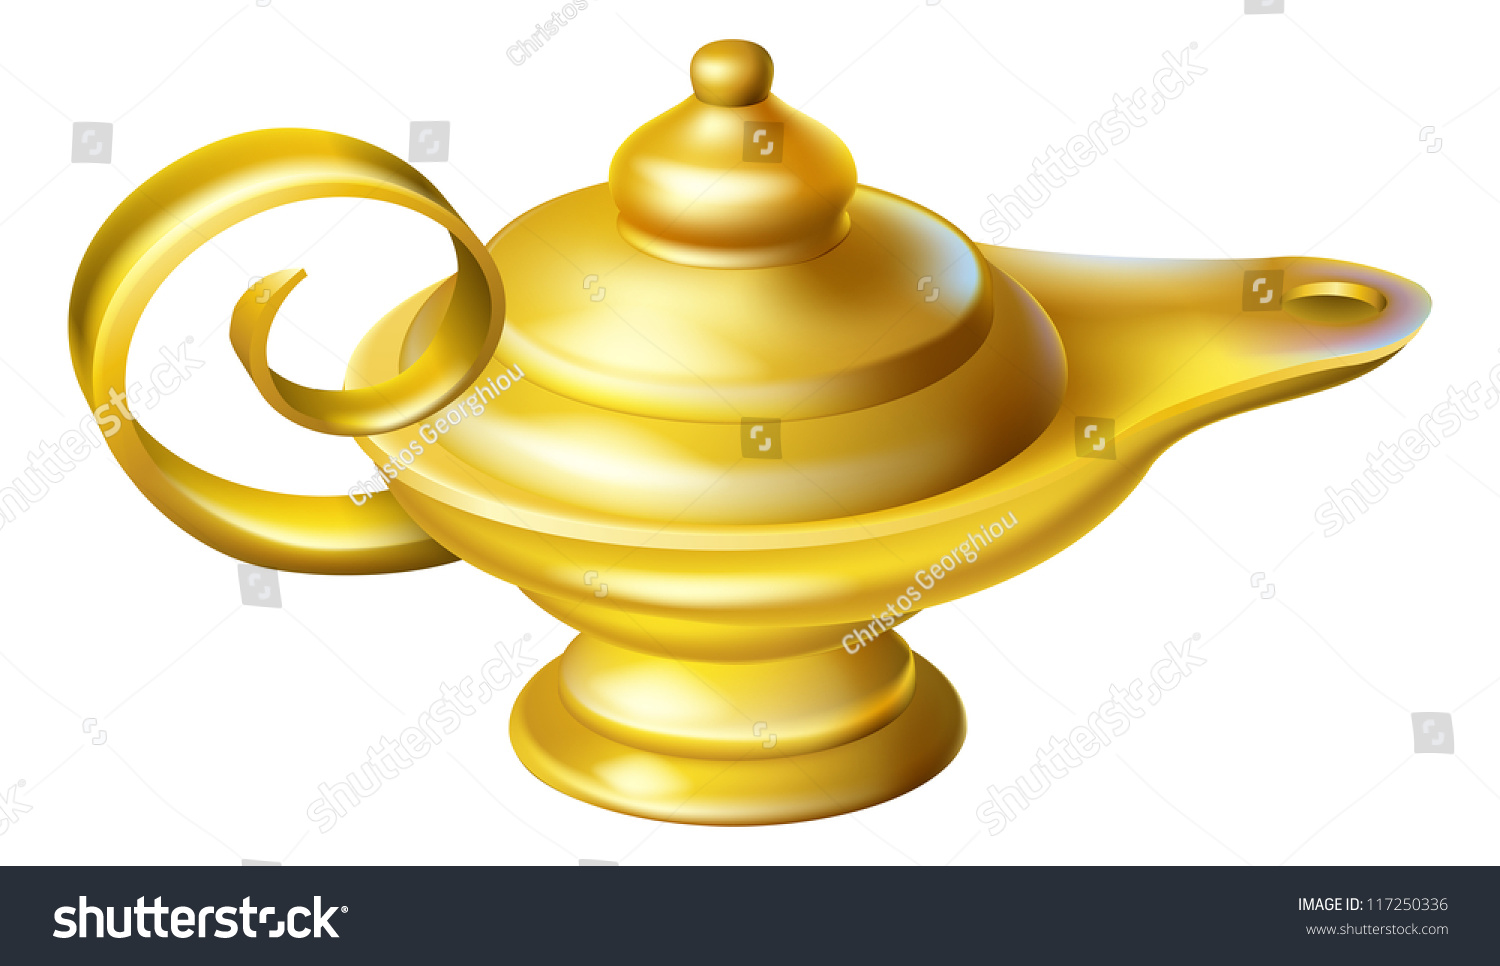 Illustration Old Fashioned Oil Lamp Like Stock Vector 117250336 ...